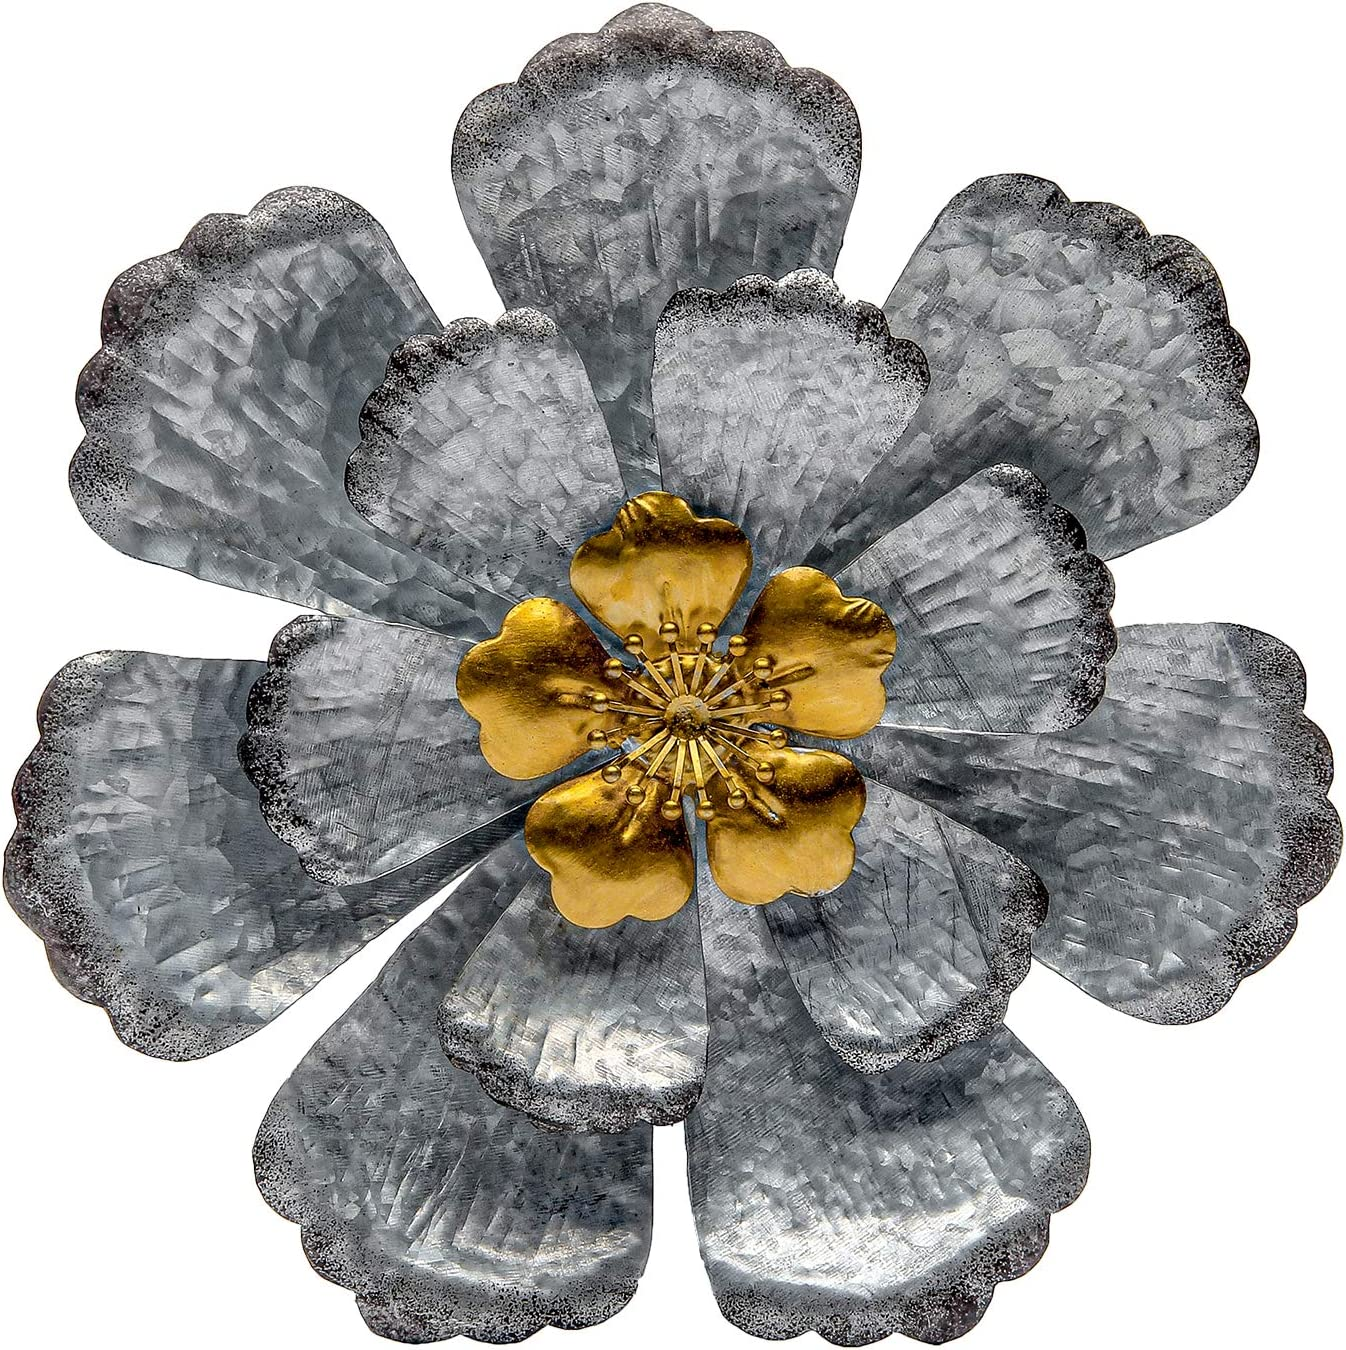 SONGXIN Silver with Gold Accents Metal Layered Floral Wall Art Decor for Bathroom Living Room Bedroom or Porch Patio 12.6 Inch